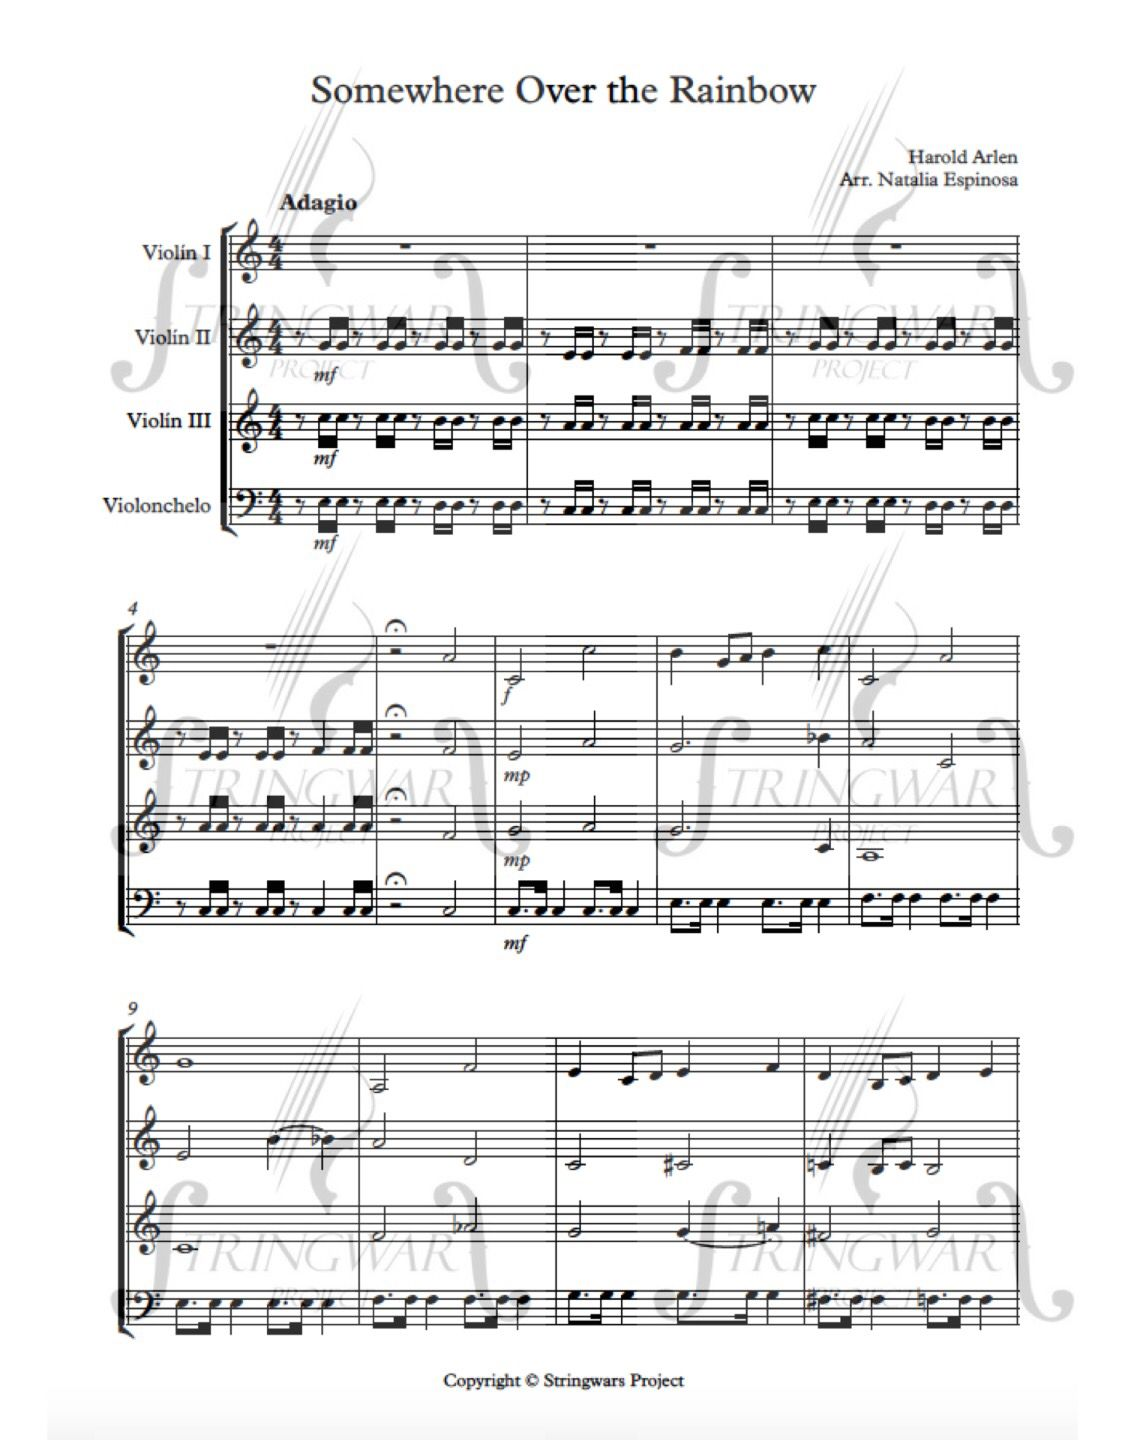 Somewhere over the rainbow for string ensamble www somewhere over the rainbow for string ensamble stringwarsproject sheetmusic hexwebz Gallery